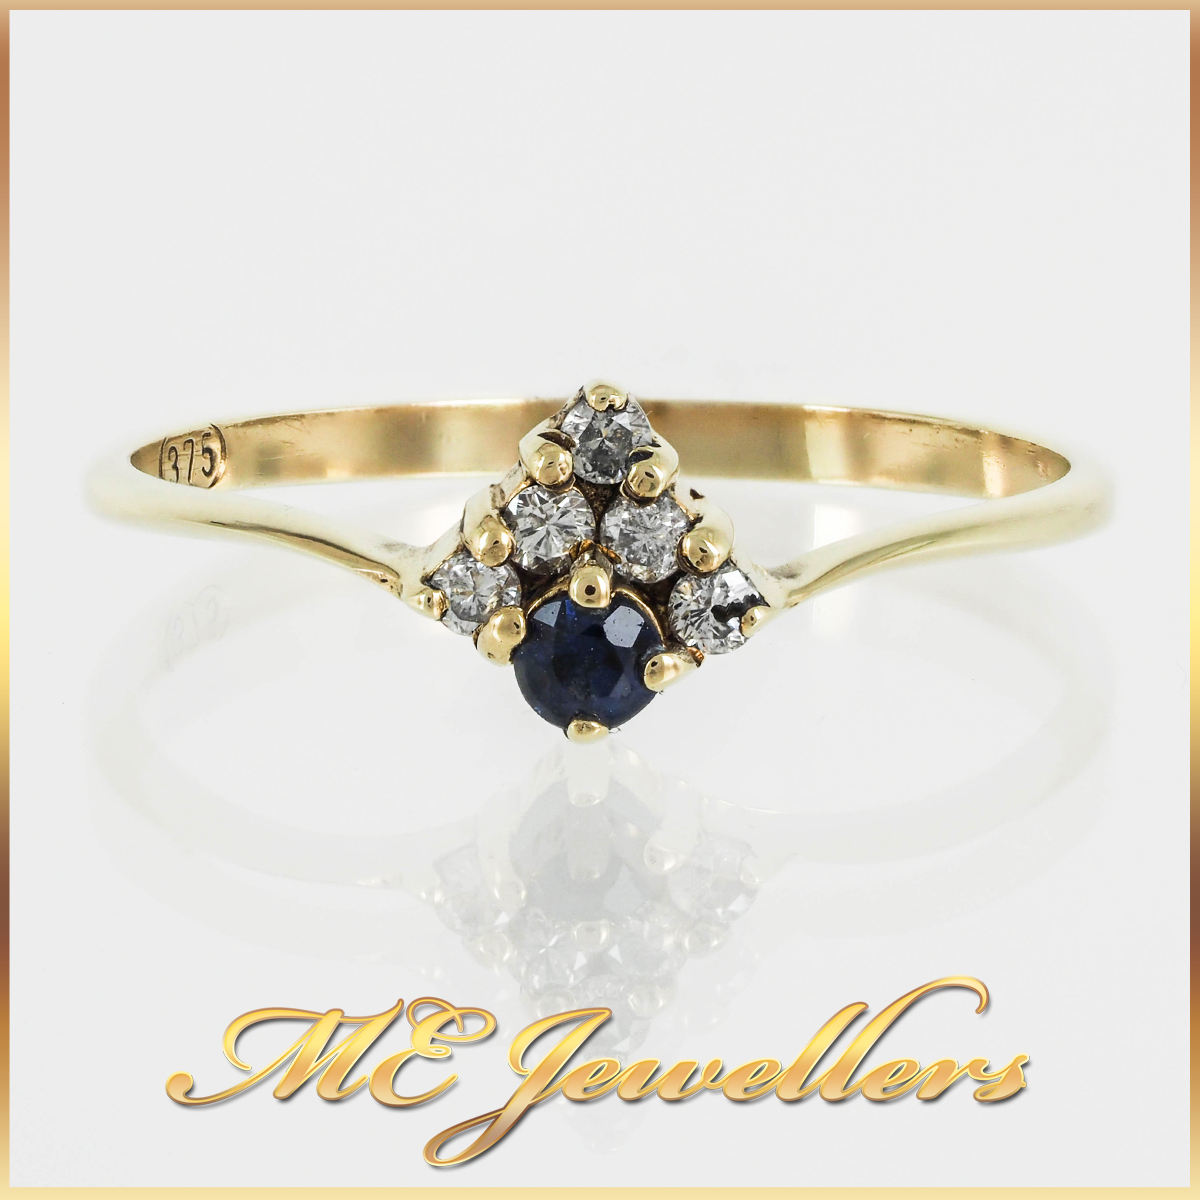 Petite 9k Vintage Sapphire Cluster Ring